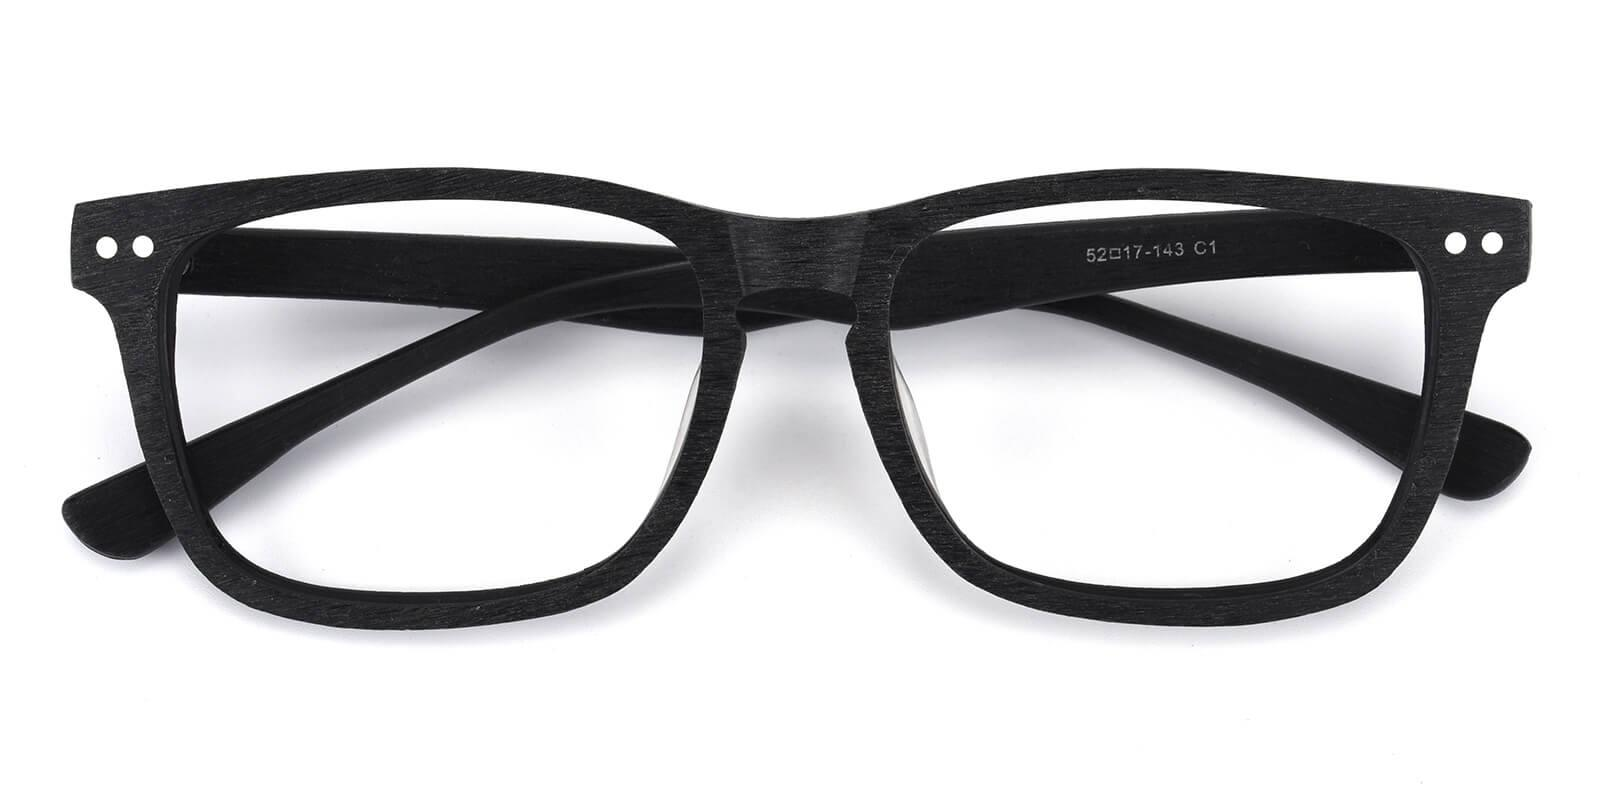 Bruke-Black-Square-Acetate-Eyeglasses-detail